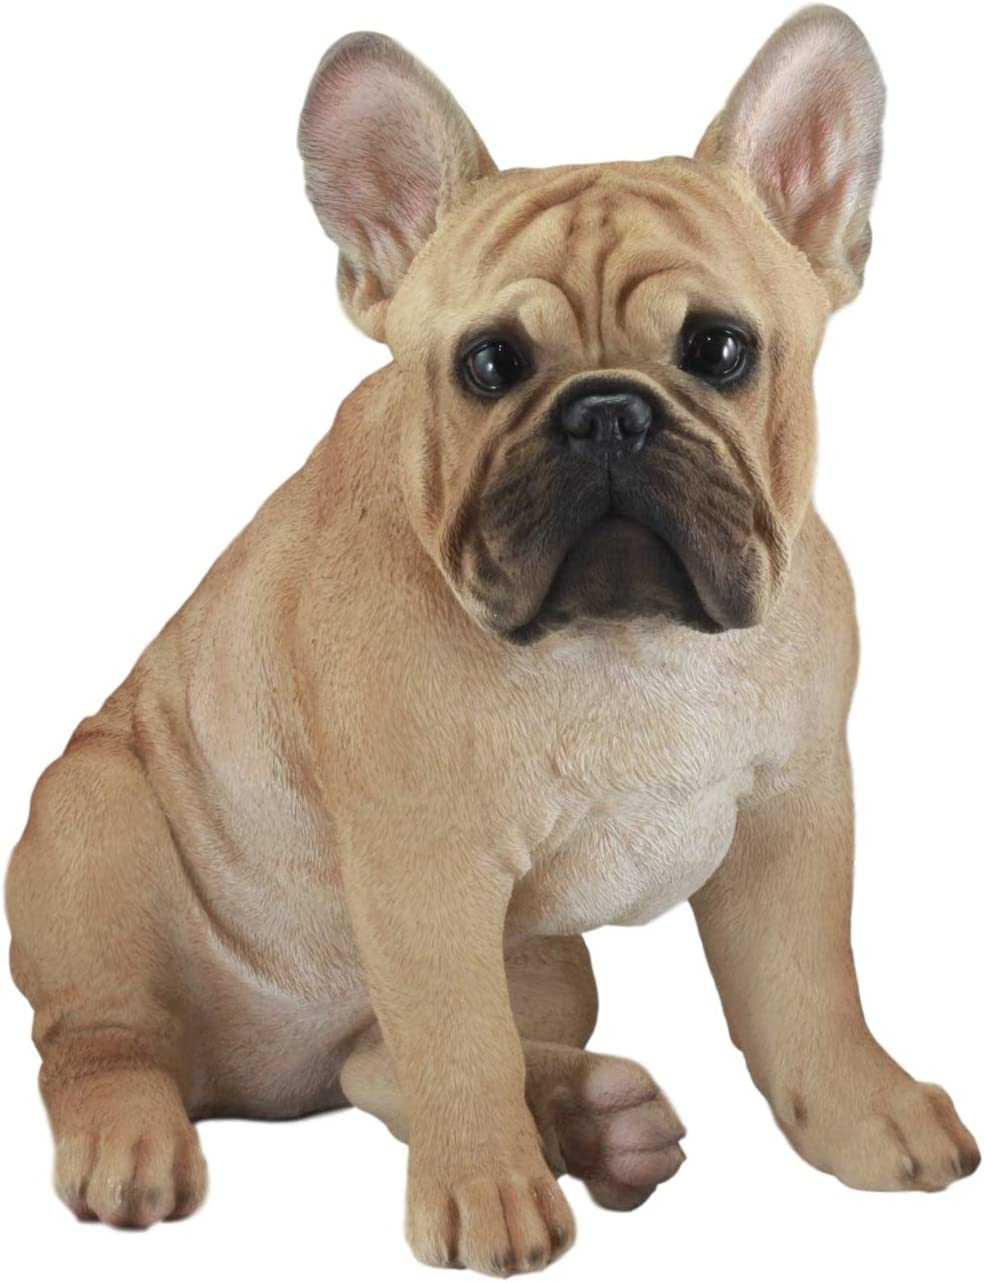 Ebros Large Lifelike Realistic French Bulldog Statue with Glass Eyes 15.75 Tall Frenchie Figurine